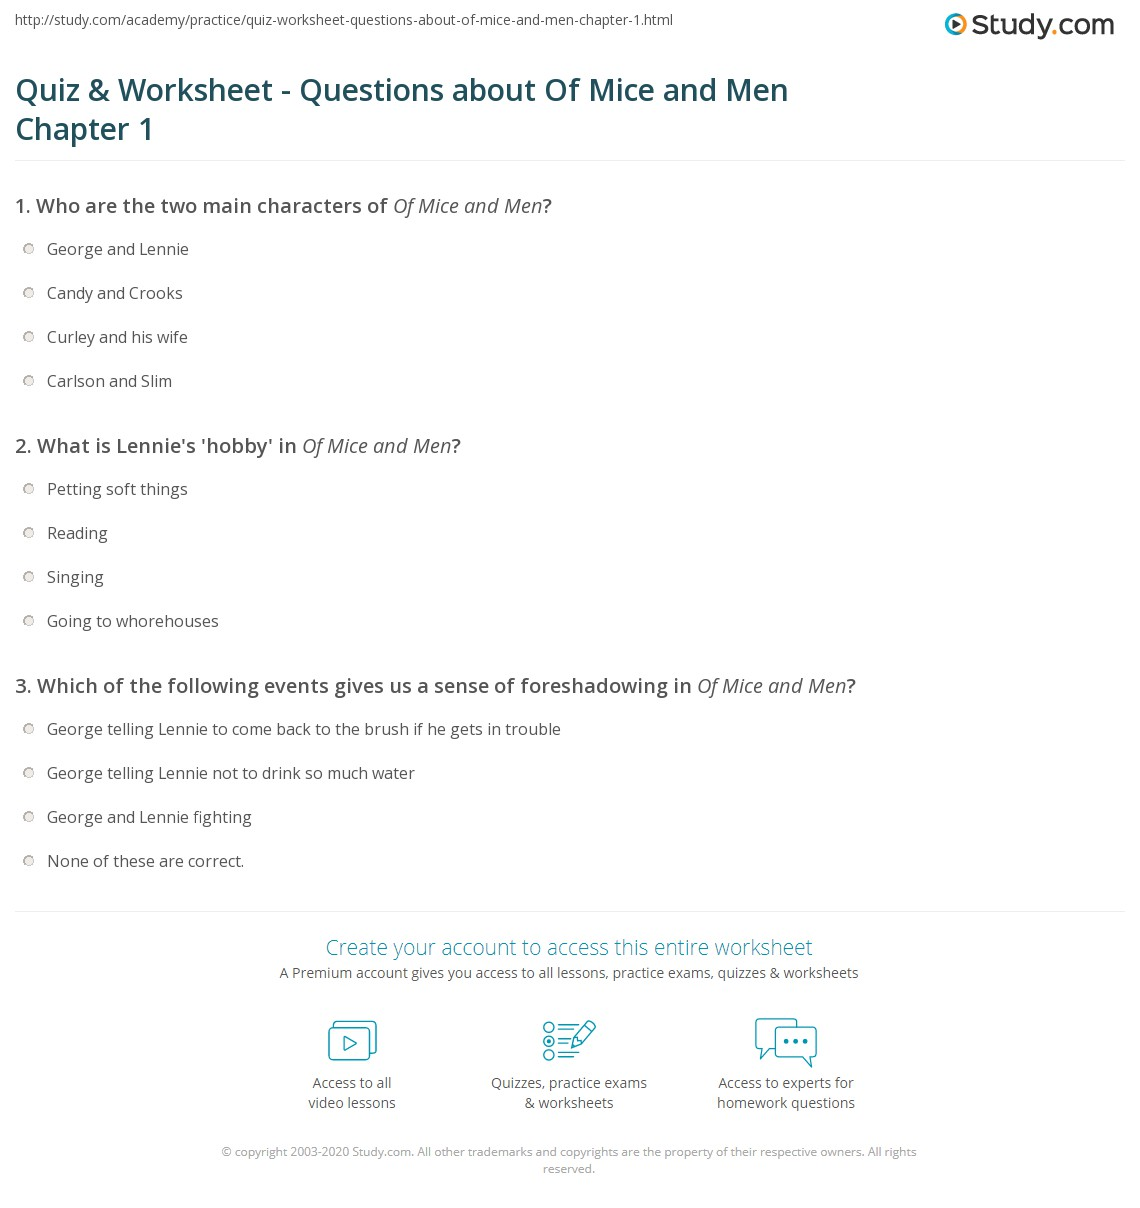 Descriptive Essay Format Quiz Worksheet Questions About Of Mice And Men Chapter  Print Of Mice And  Men Chapter College Essay Leadership also Music Therapy Essay Of Mice And Men Candy Essay Quiz Worksheet Questions About Of Mice  Hindi Essay On Mother Teresa